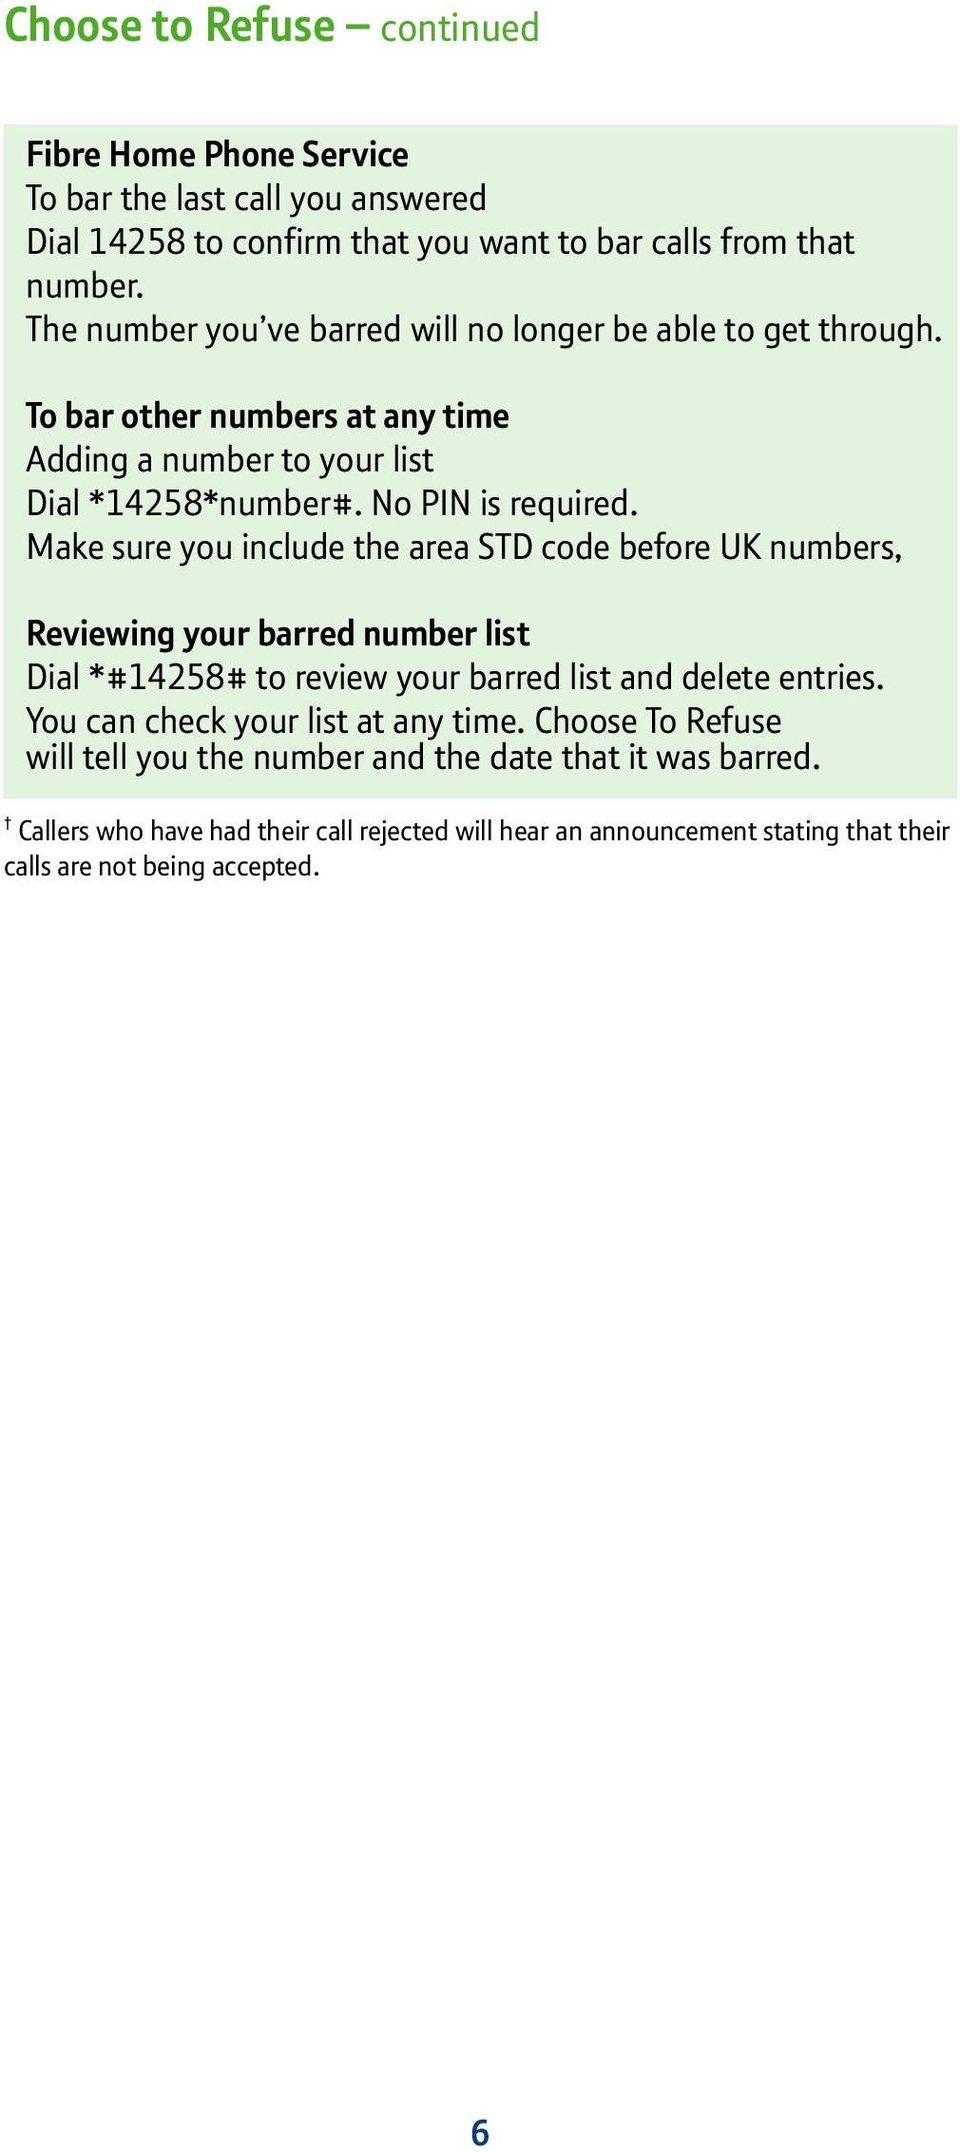 Make sure you include the area STD code before UK numbers, Reviewing your barred number list Dial *#14258# to review your barred list and delete entries.